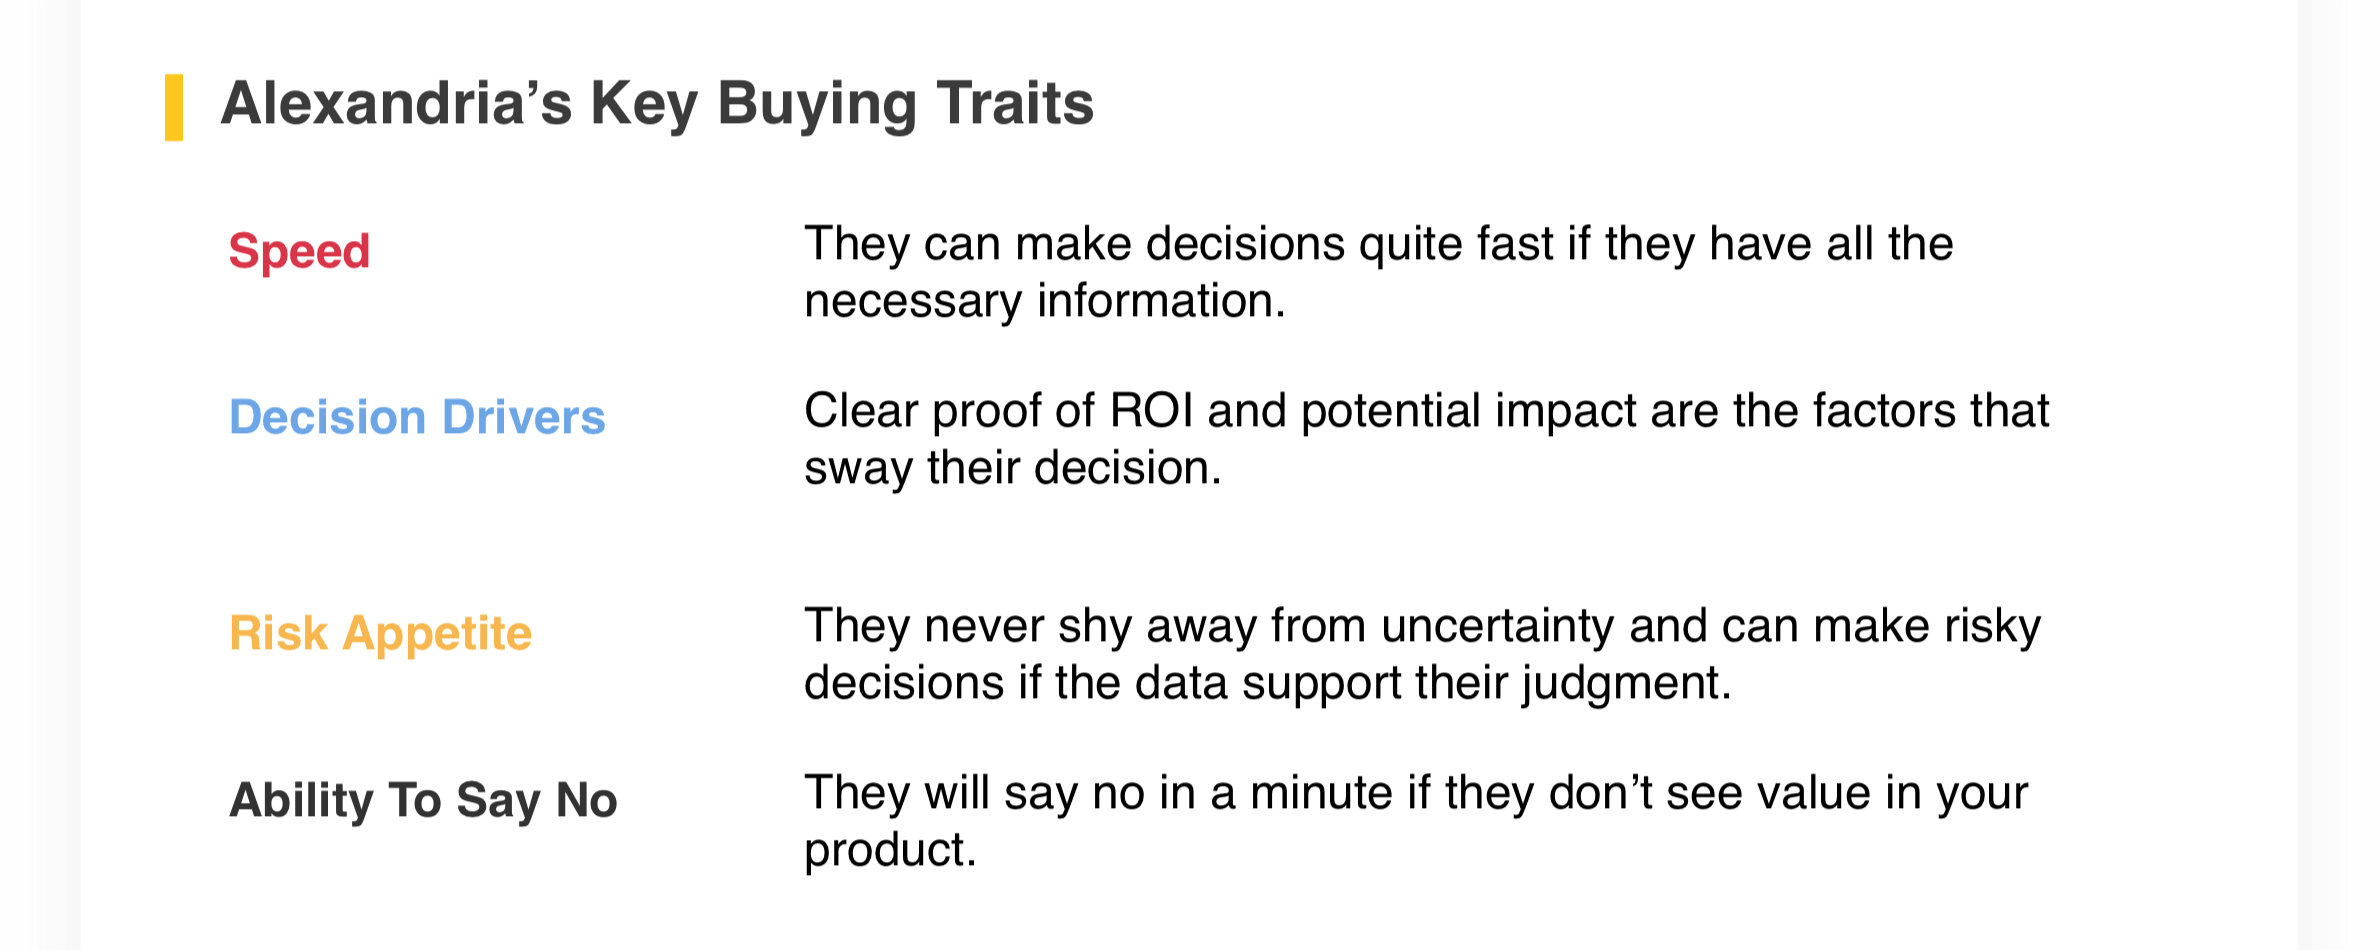 Alexandria's Key Buying Traits